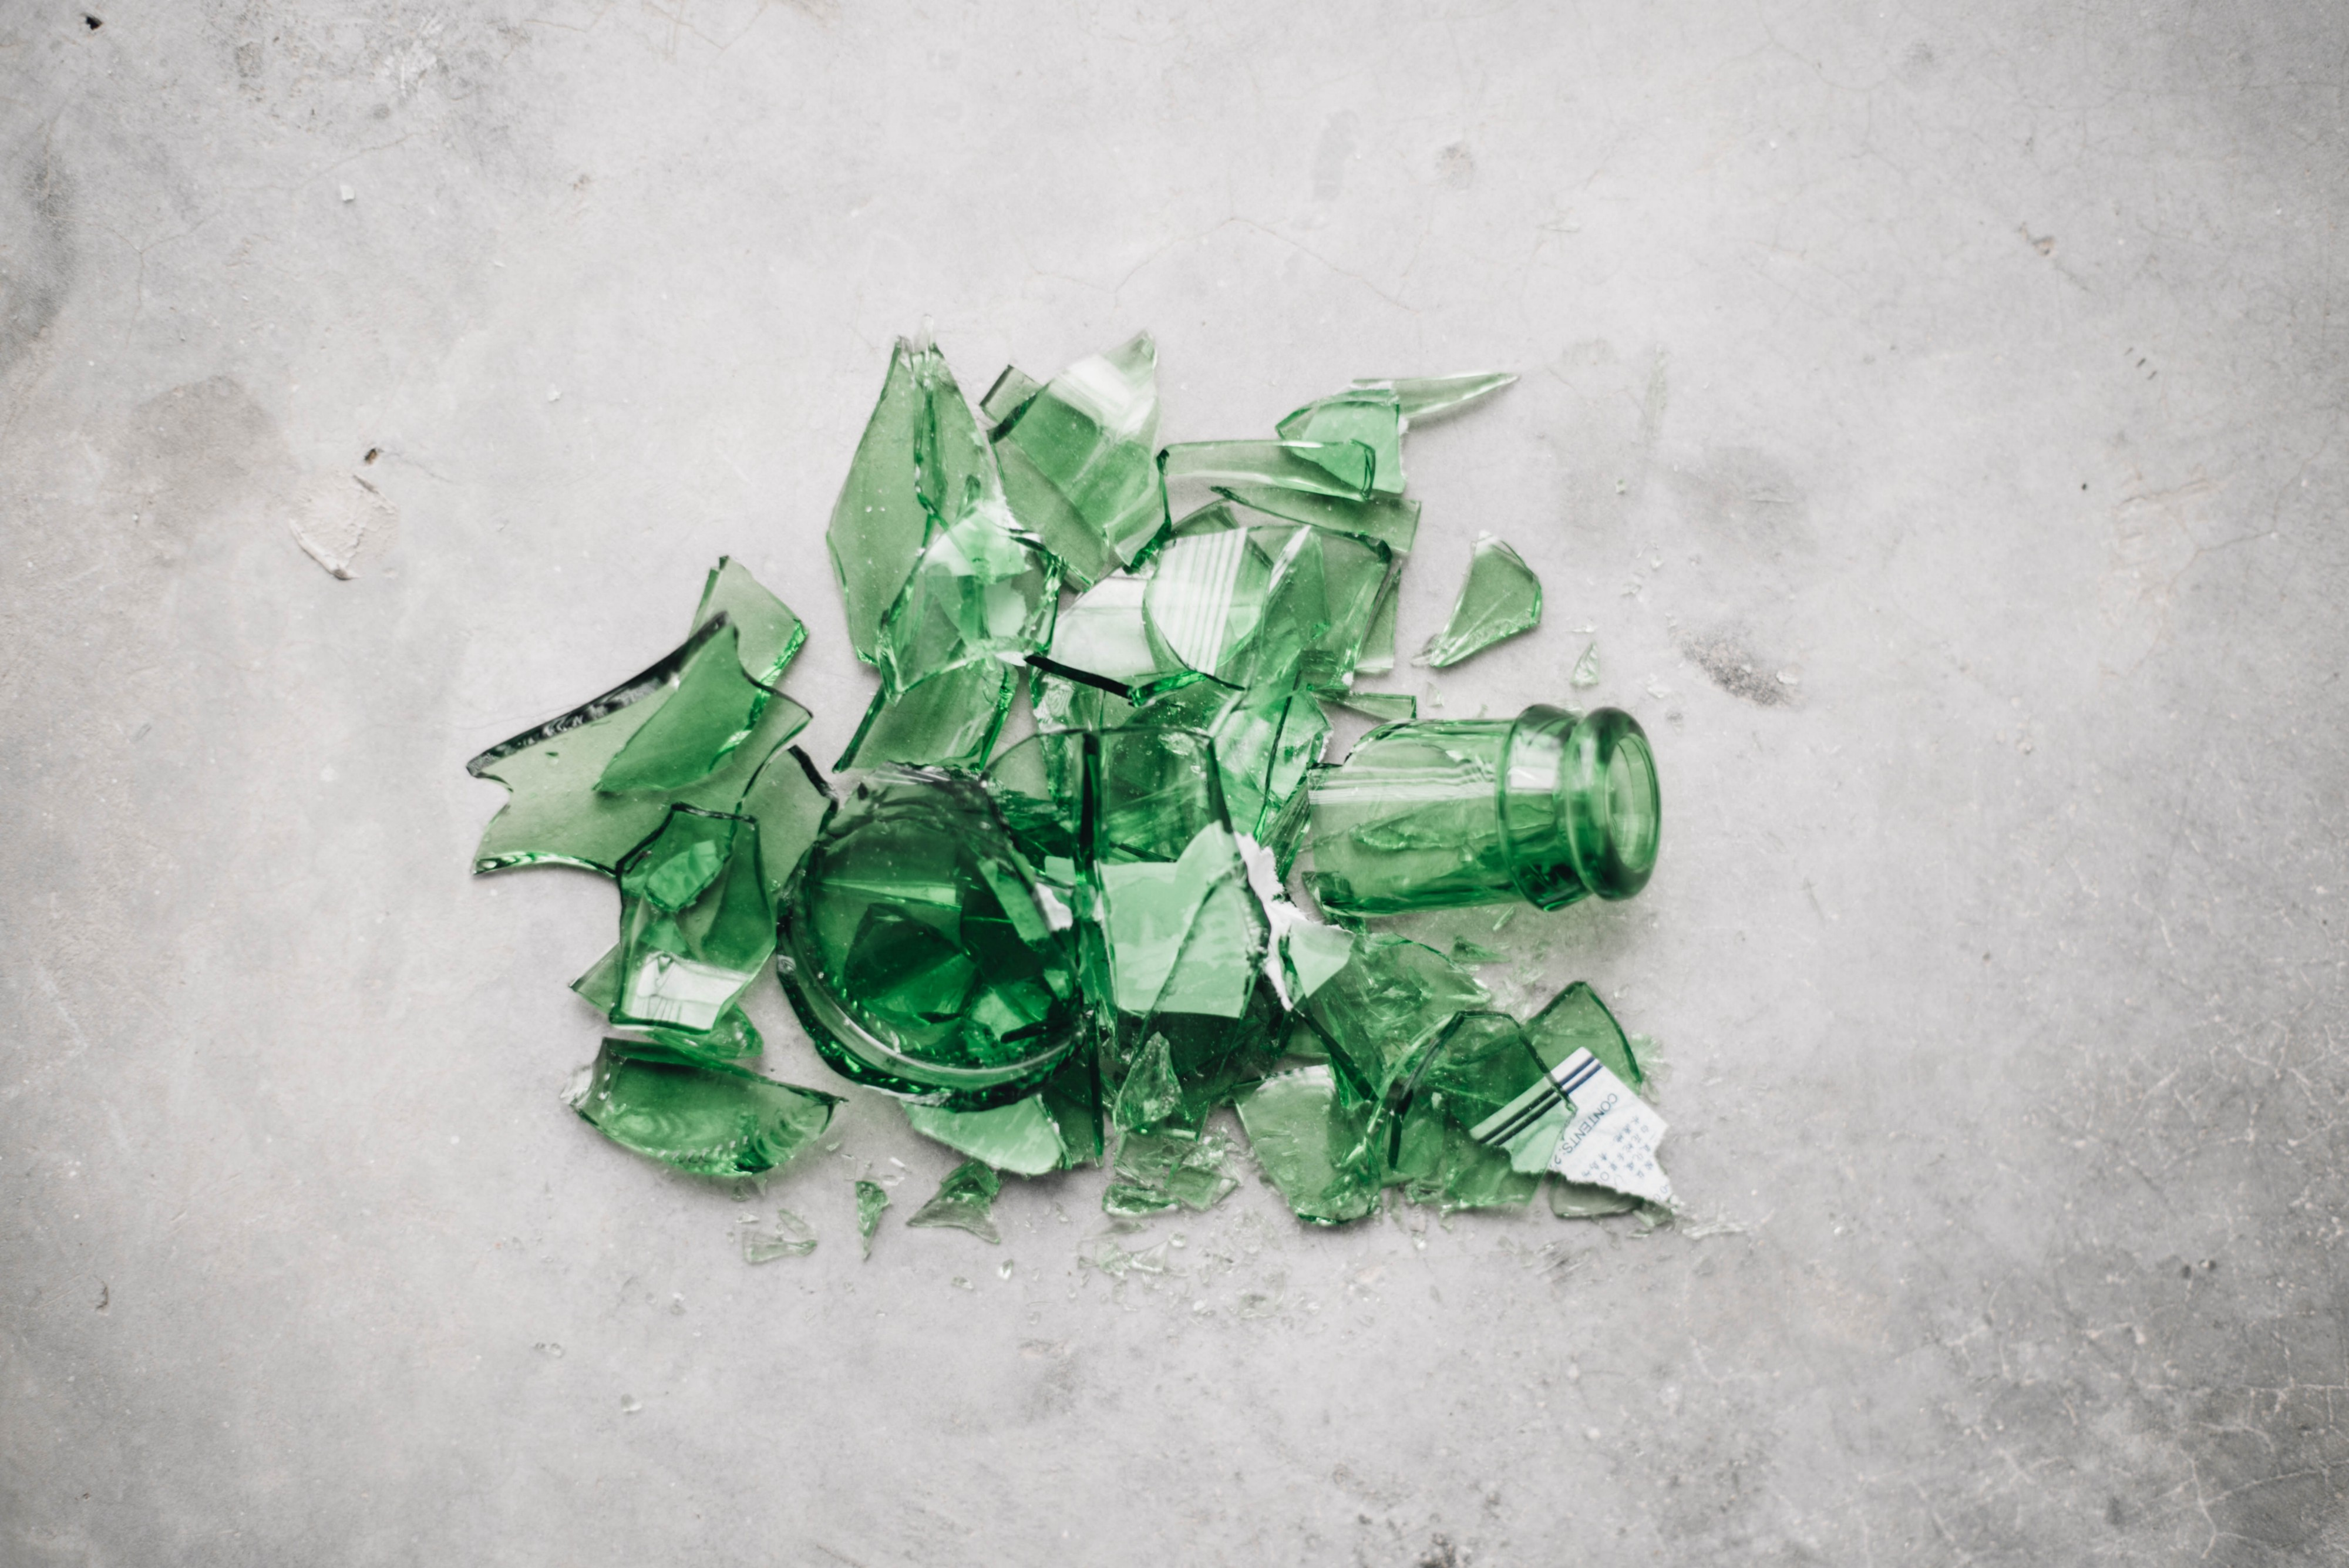 A green shattered glass bottle